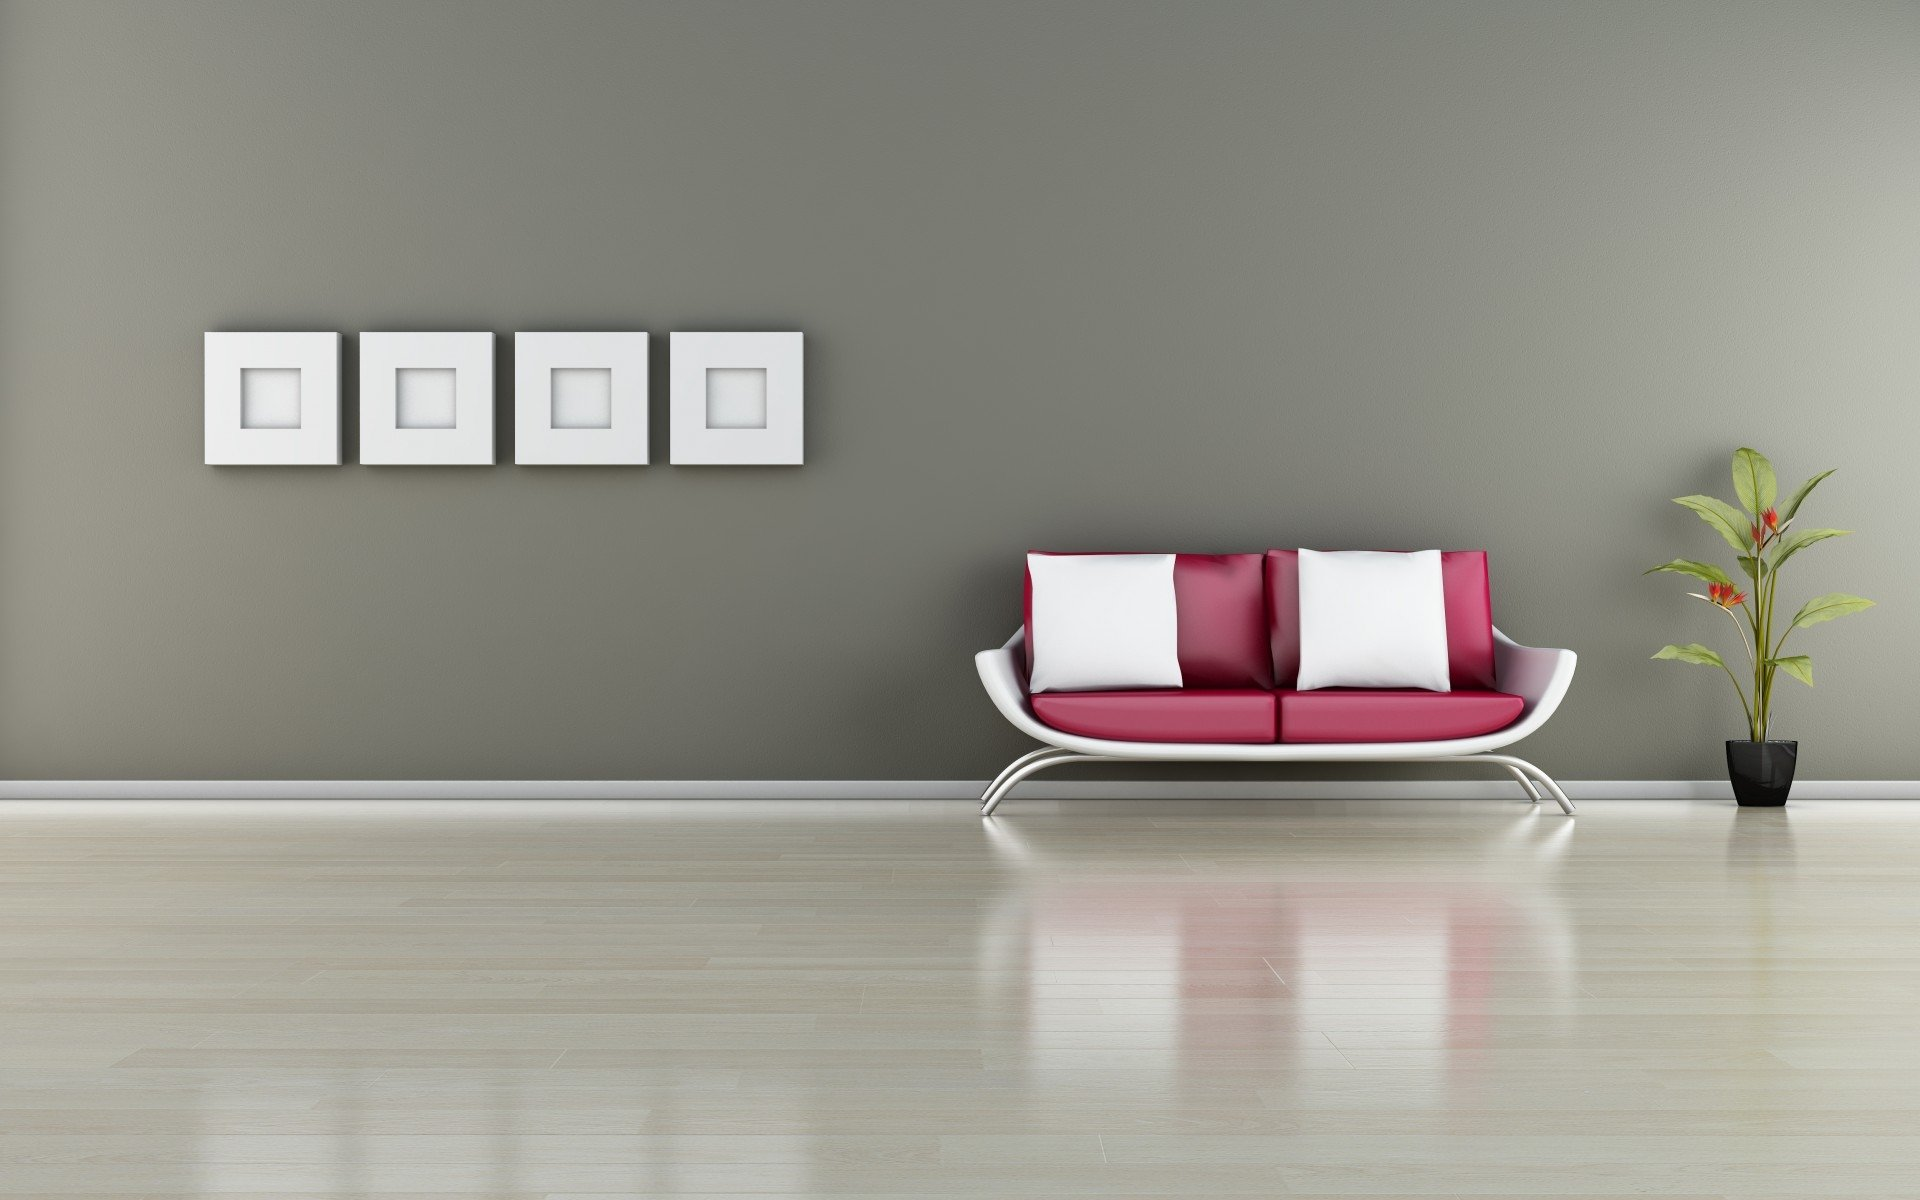 7 Sofa Hd Wallpapers Background Images Wallpaper Abyss